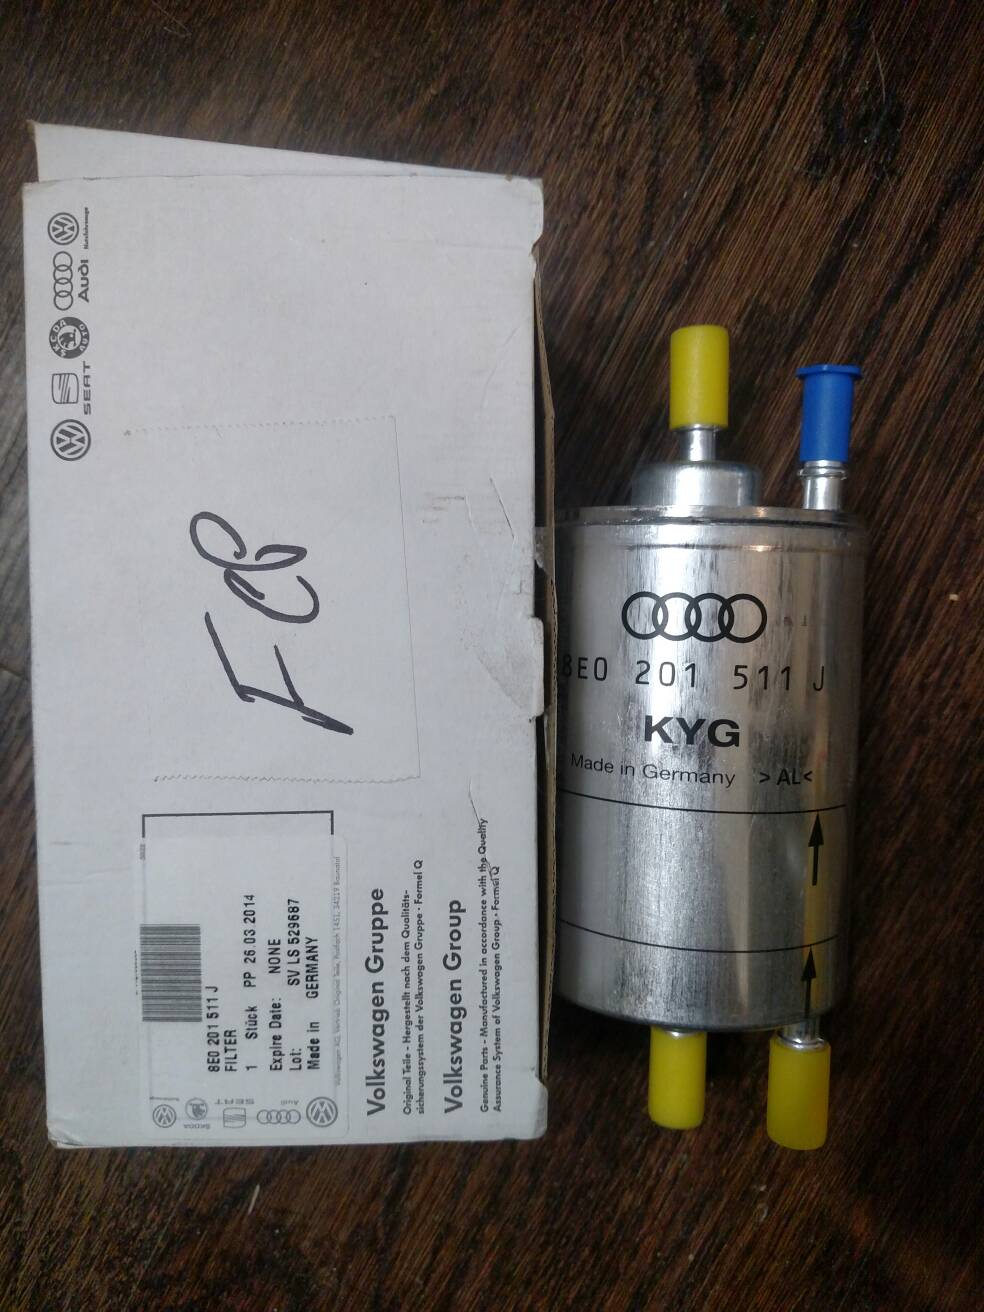 For Sale A4 S4 18 30 42 Fuel Filter Cabriolet 2008 Audi I Am Available At M9a 3t7 After 5pm